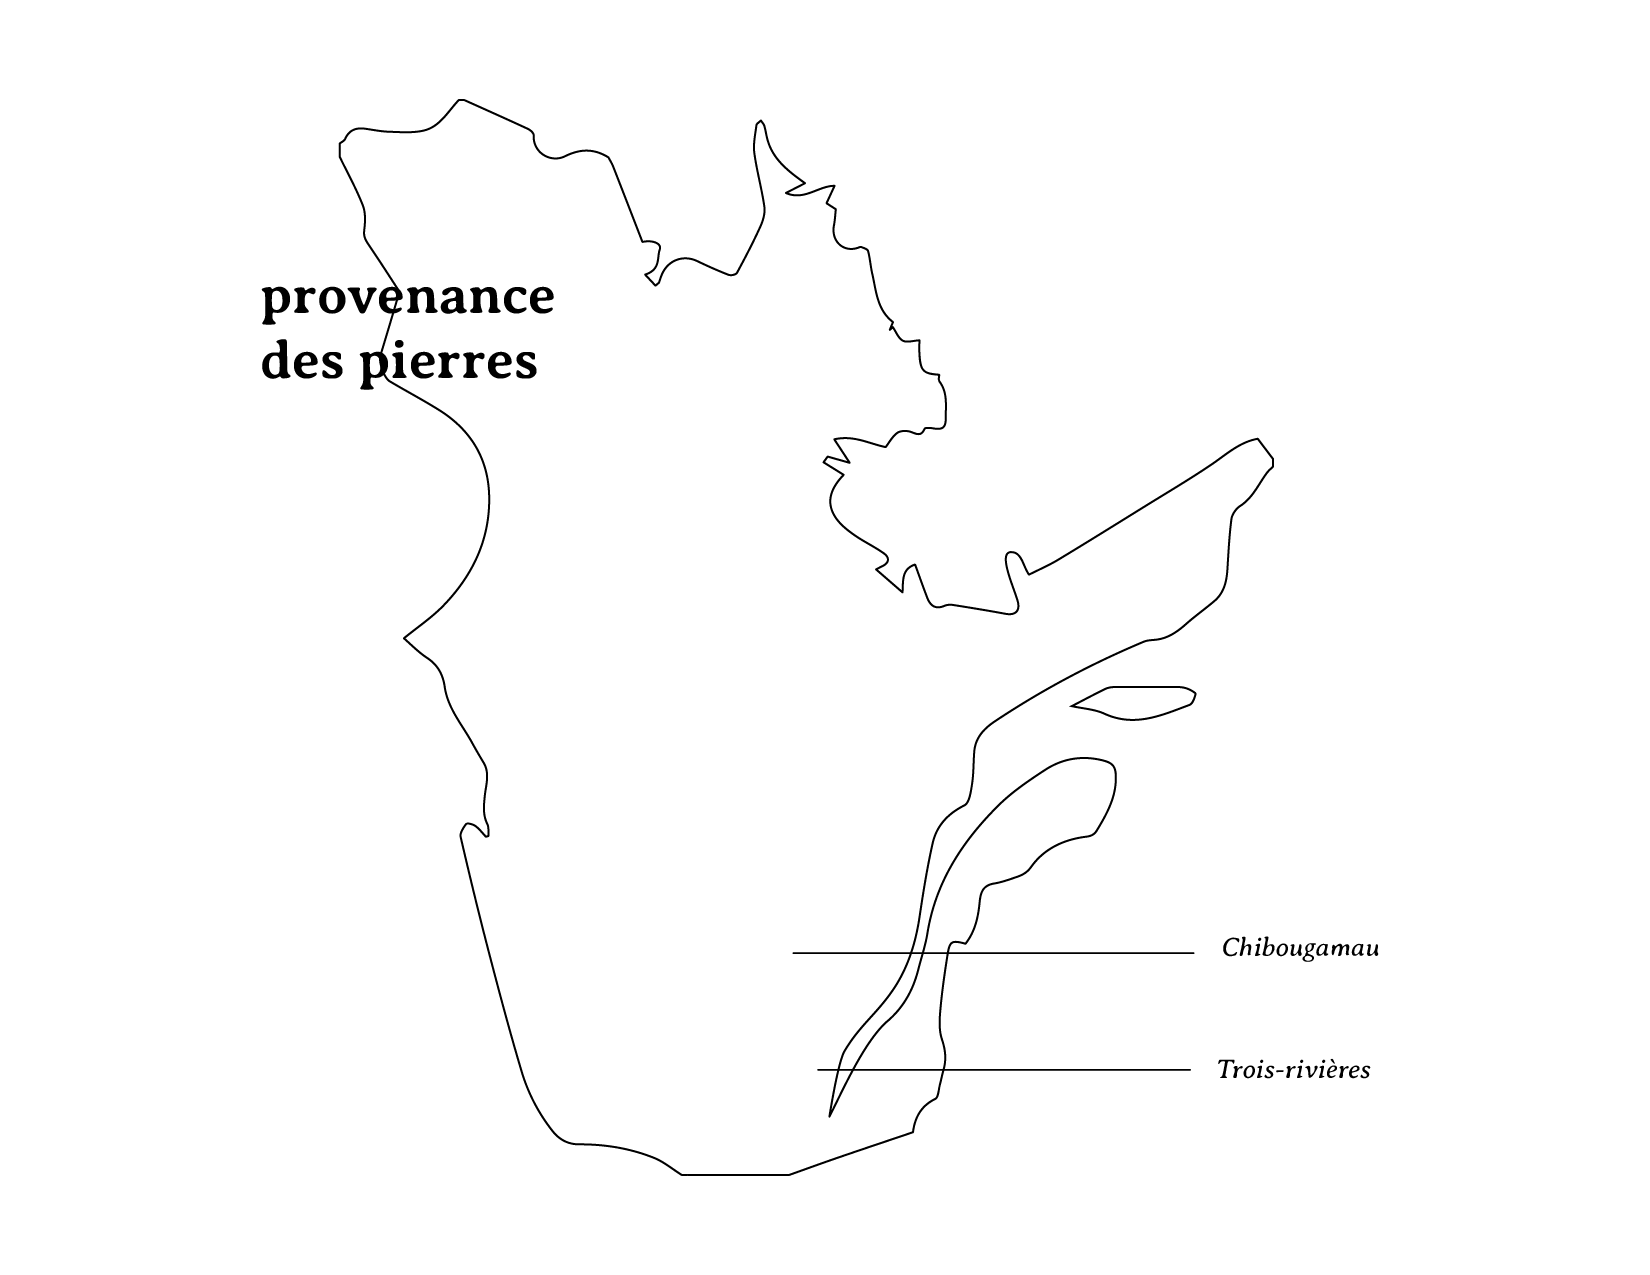 provenance des pierres-01.png